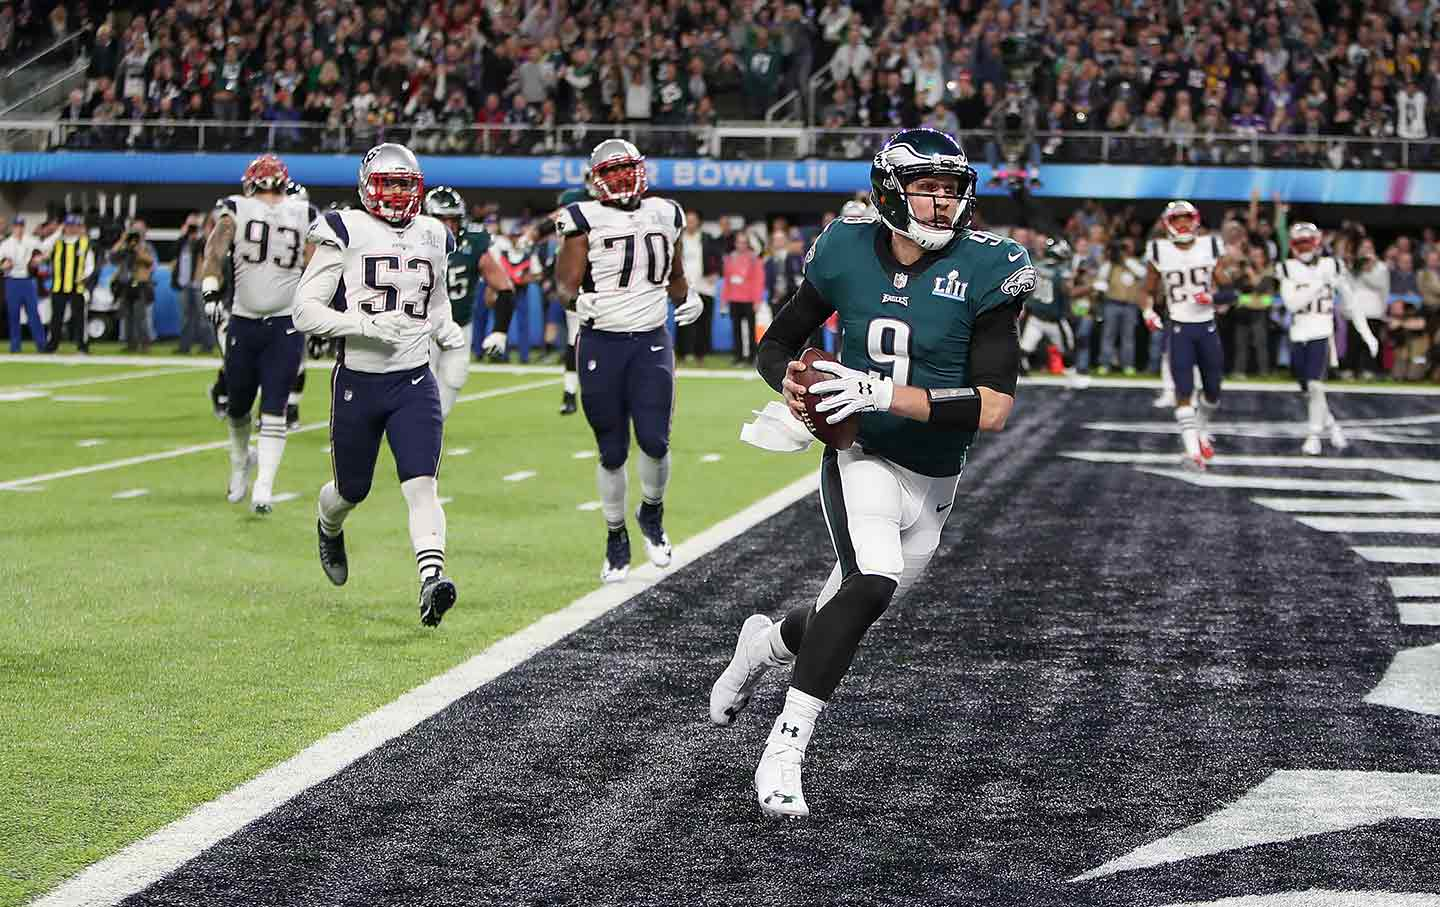 49910ca74a2 Philadelphia Eagles quarterback Nick Foles catches a touchdown pass during  the NFL Super Bowl LII against the New England Patriots, February 4, 2018.